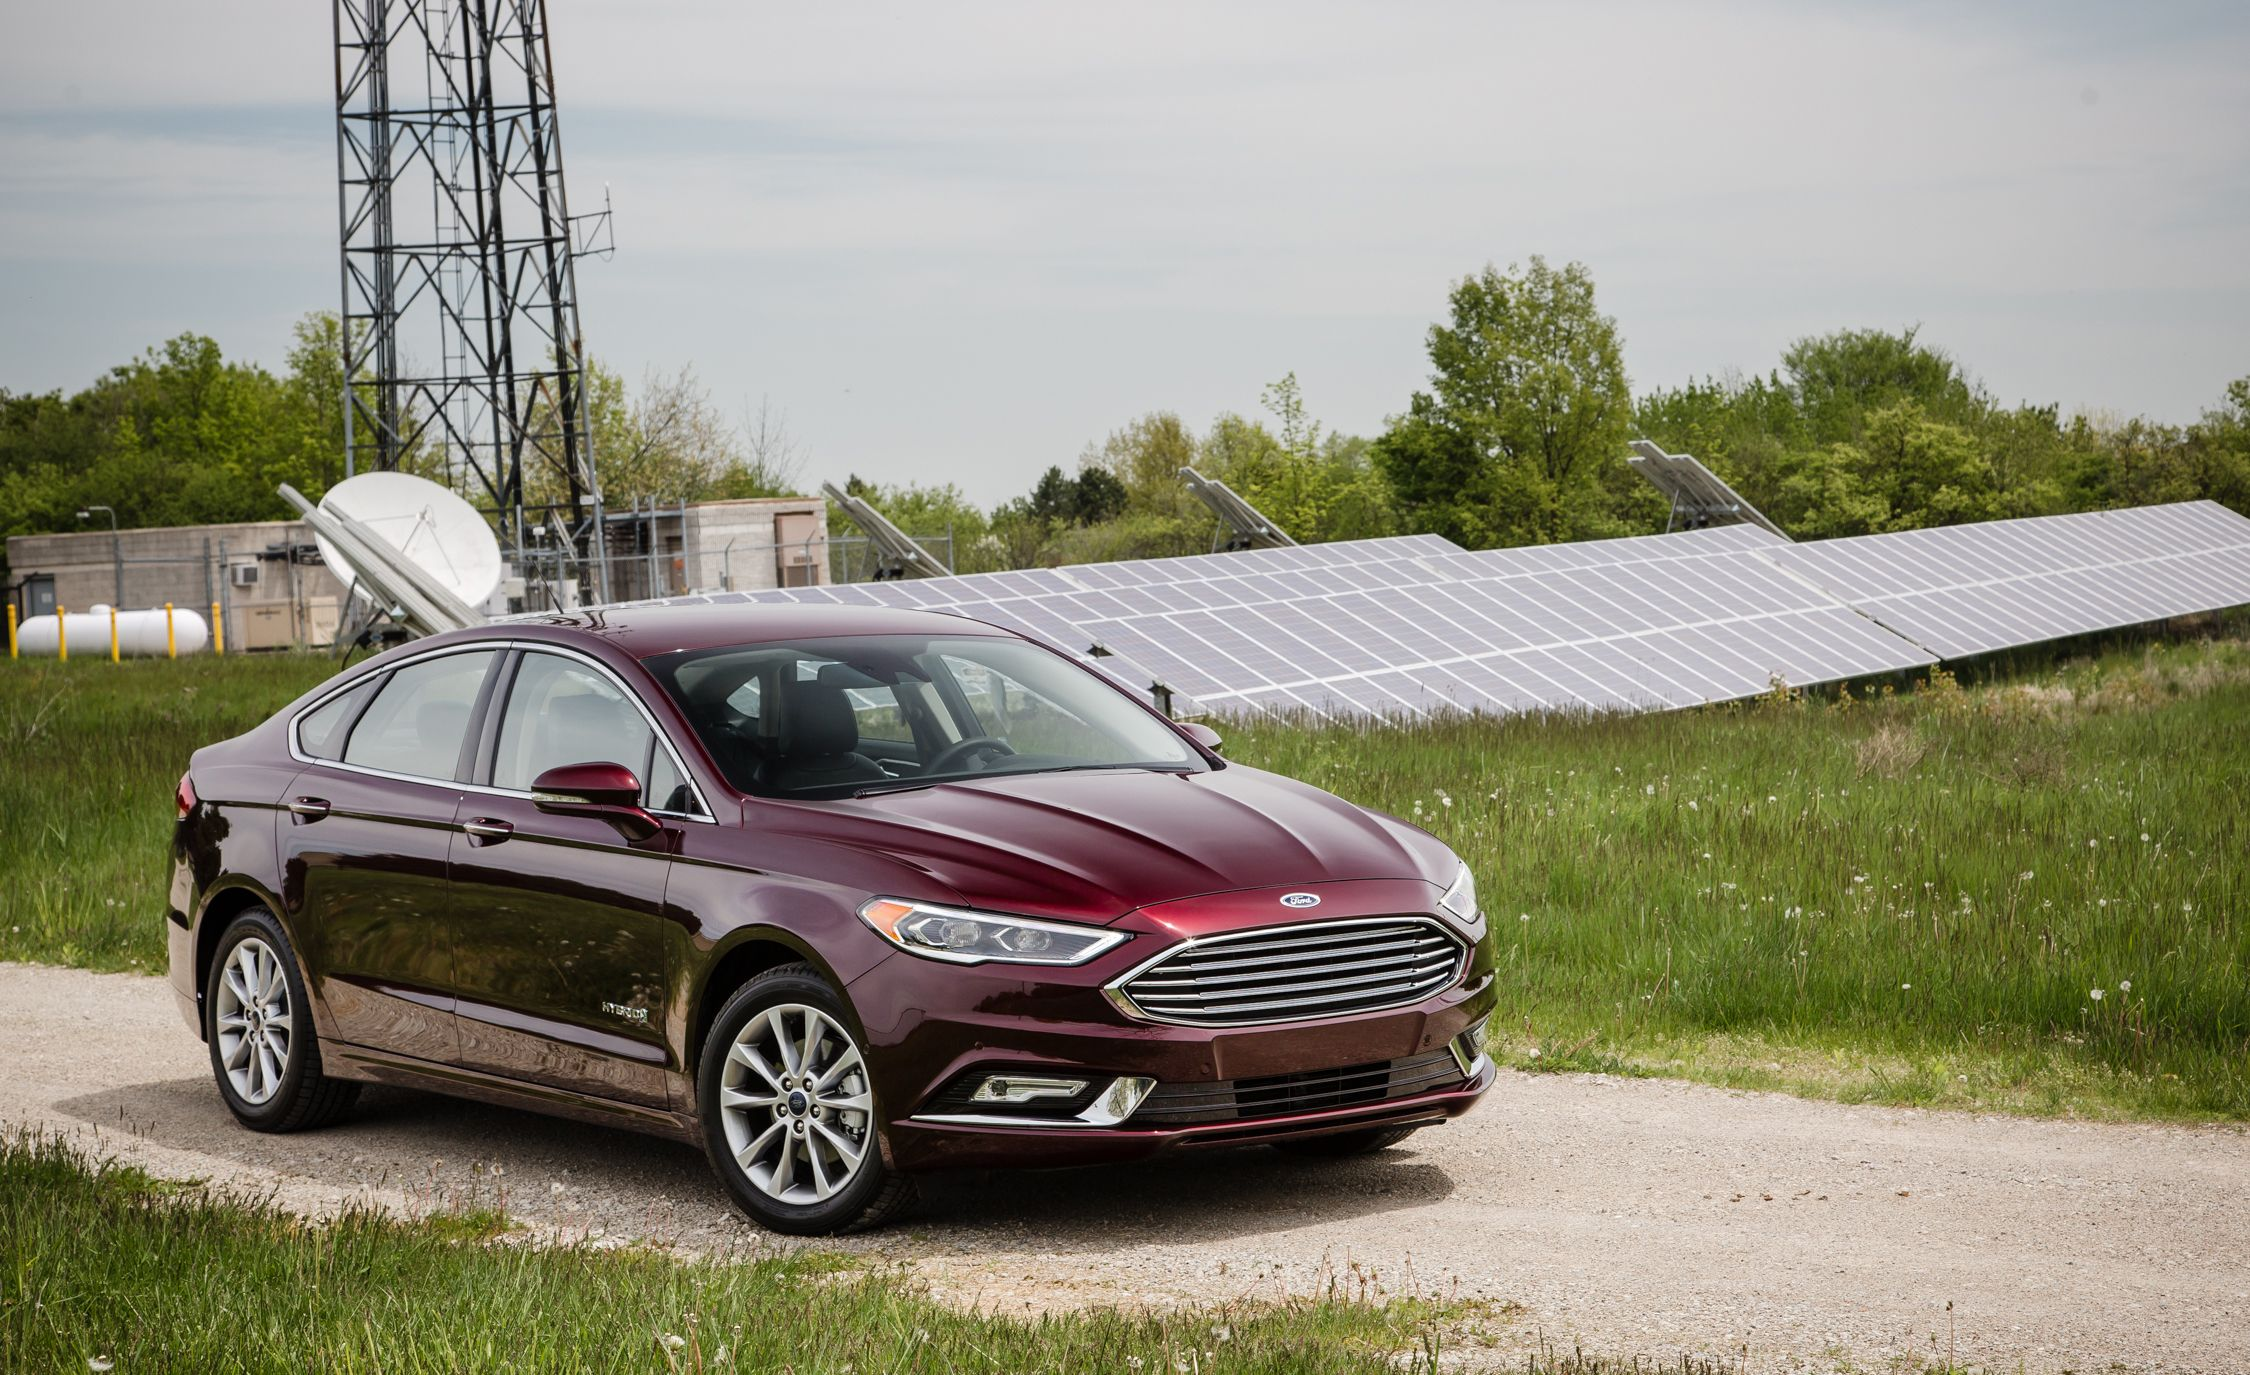 2017 Ford Fusion Engine and Transmission Review